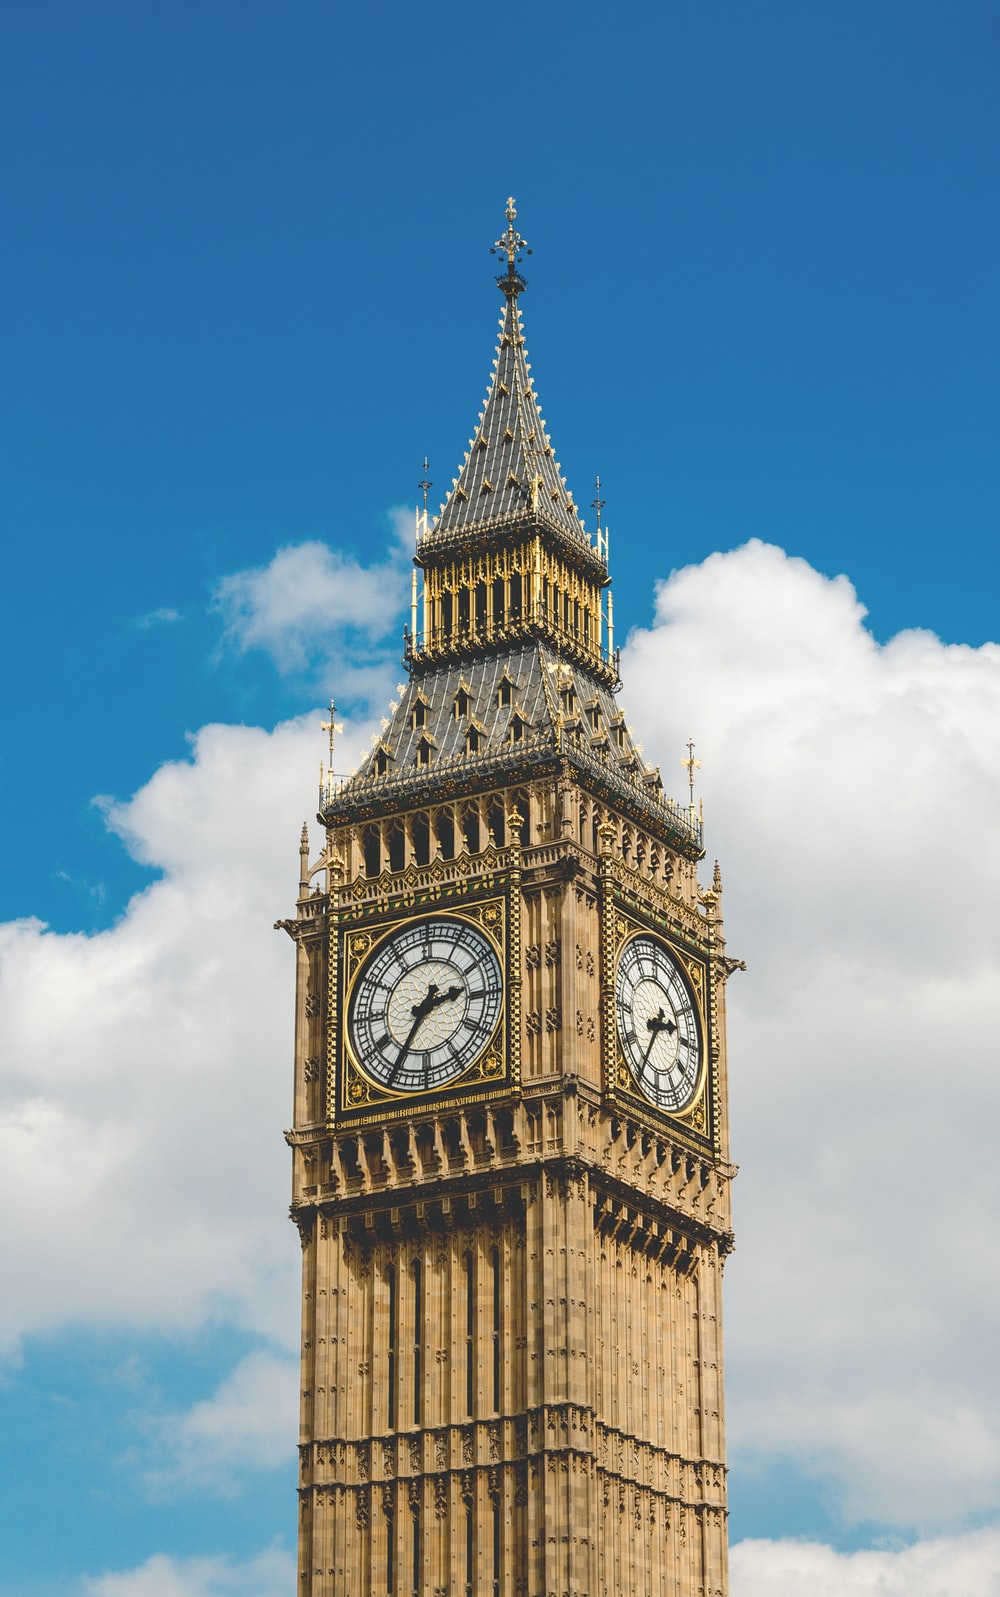 Big ben pictures download free images on unsplash the elizabeth tower housing the big ben bell against a fluffy cloud in a blue sky malvernweather Choice Image